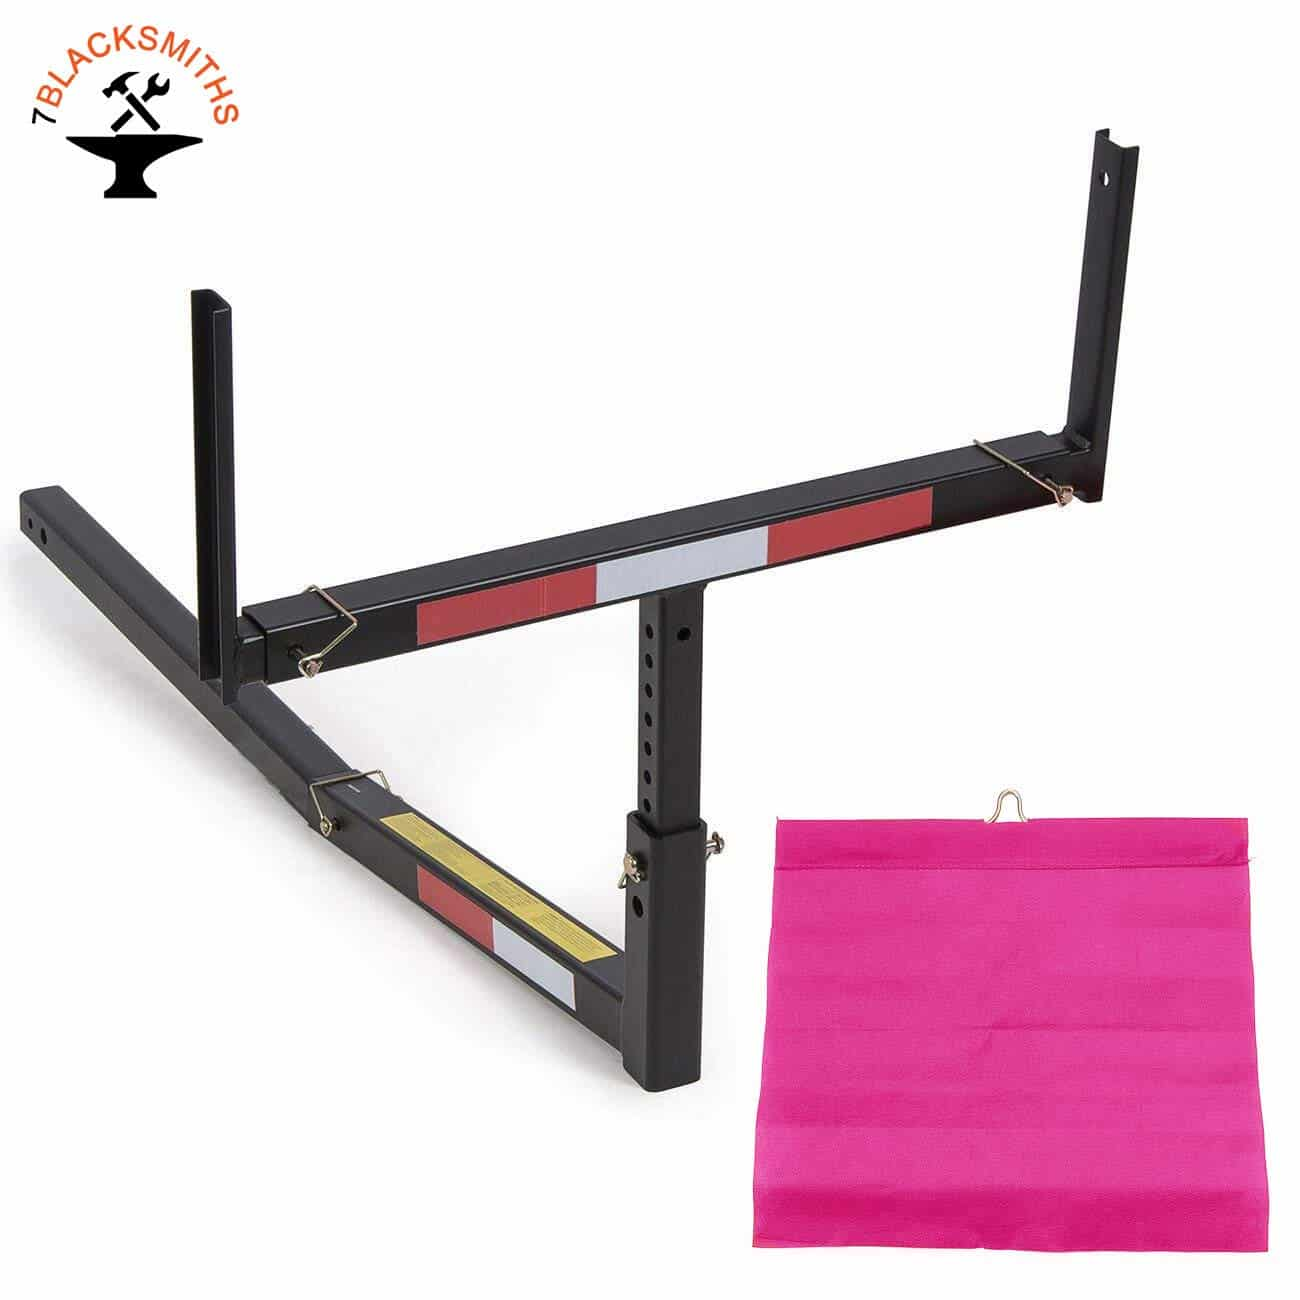 7Blacksmith Adjustable Truck Bed Extender